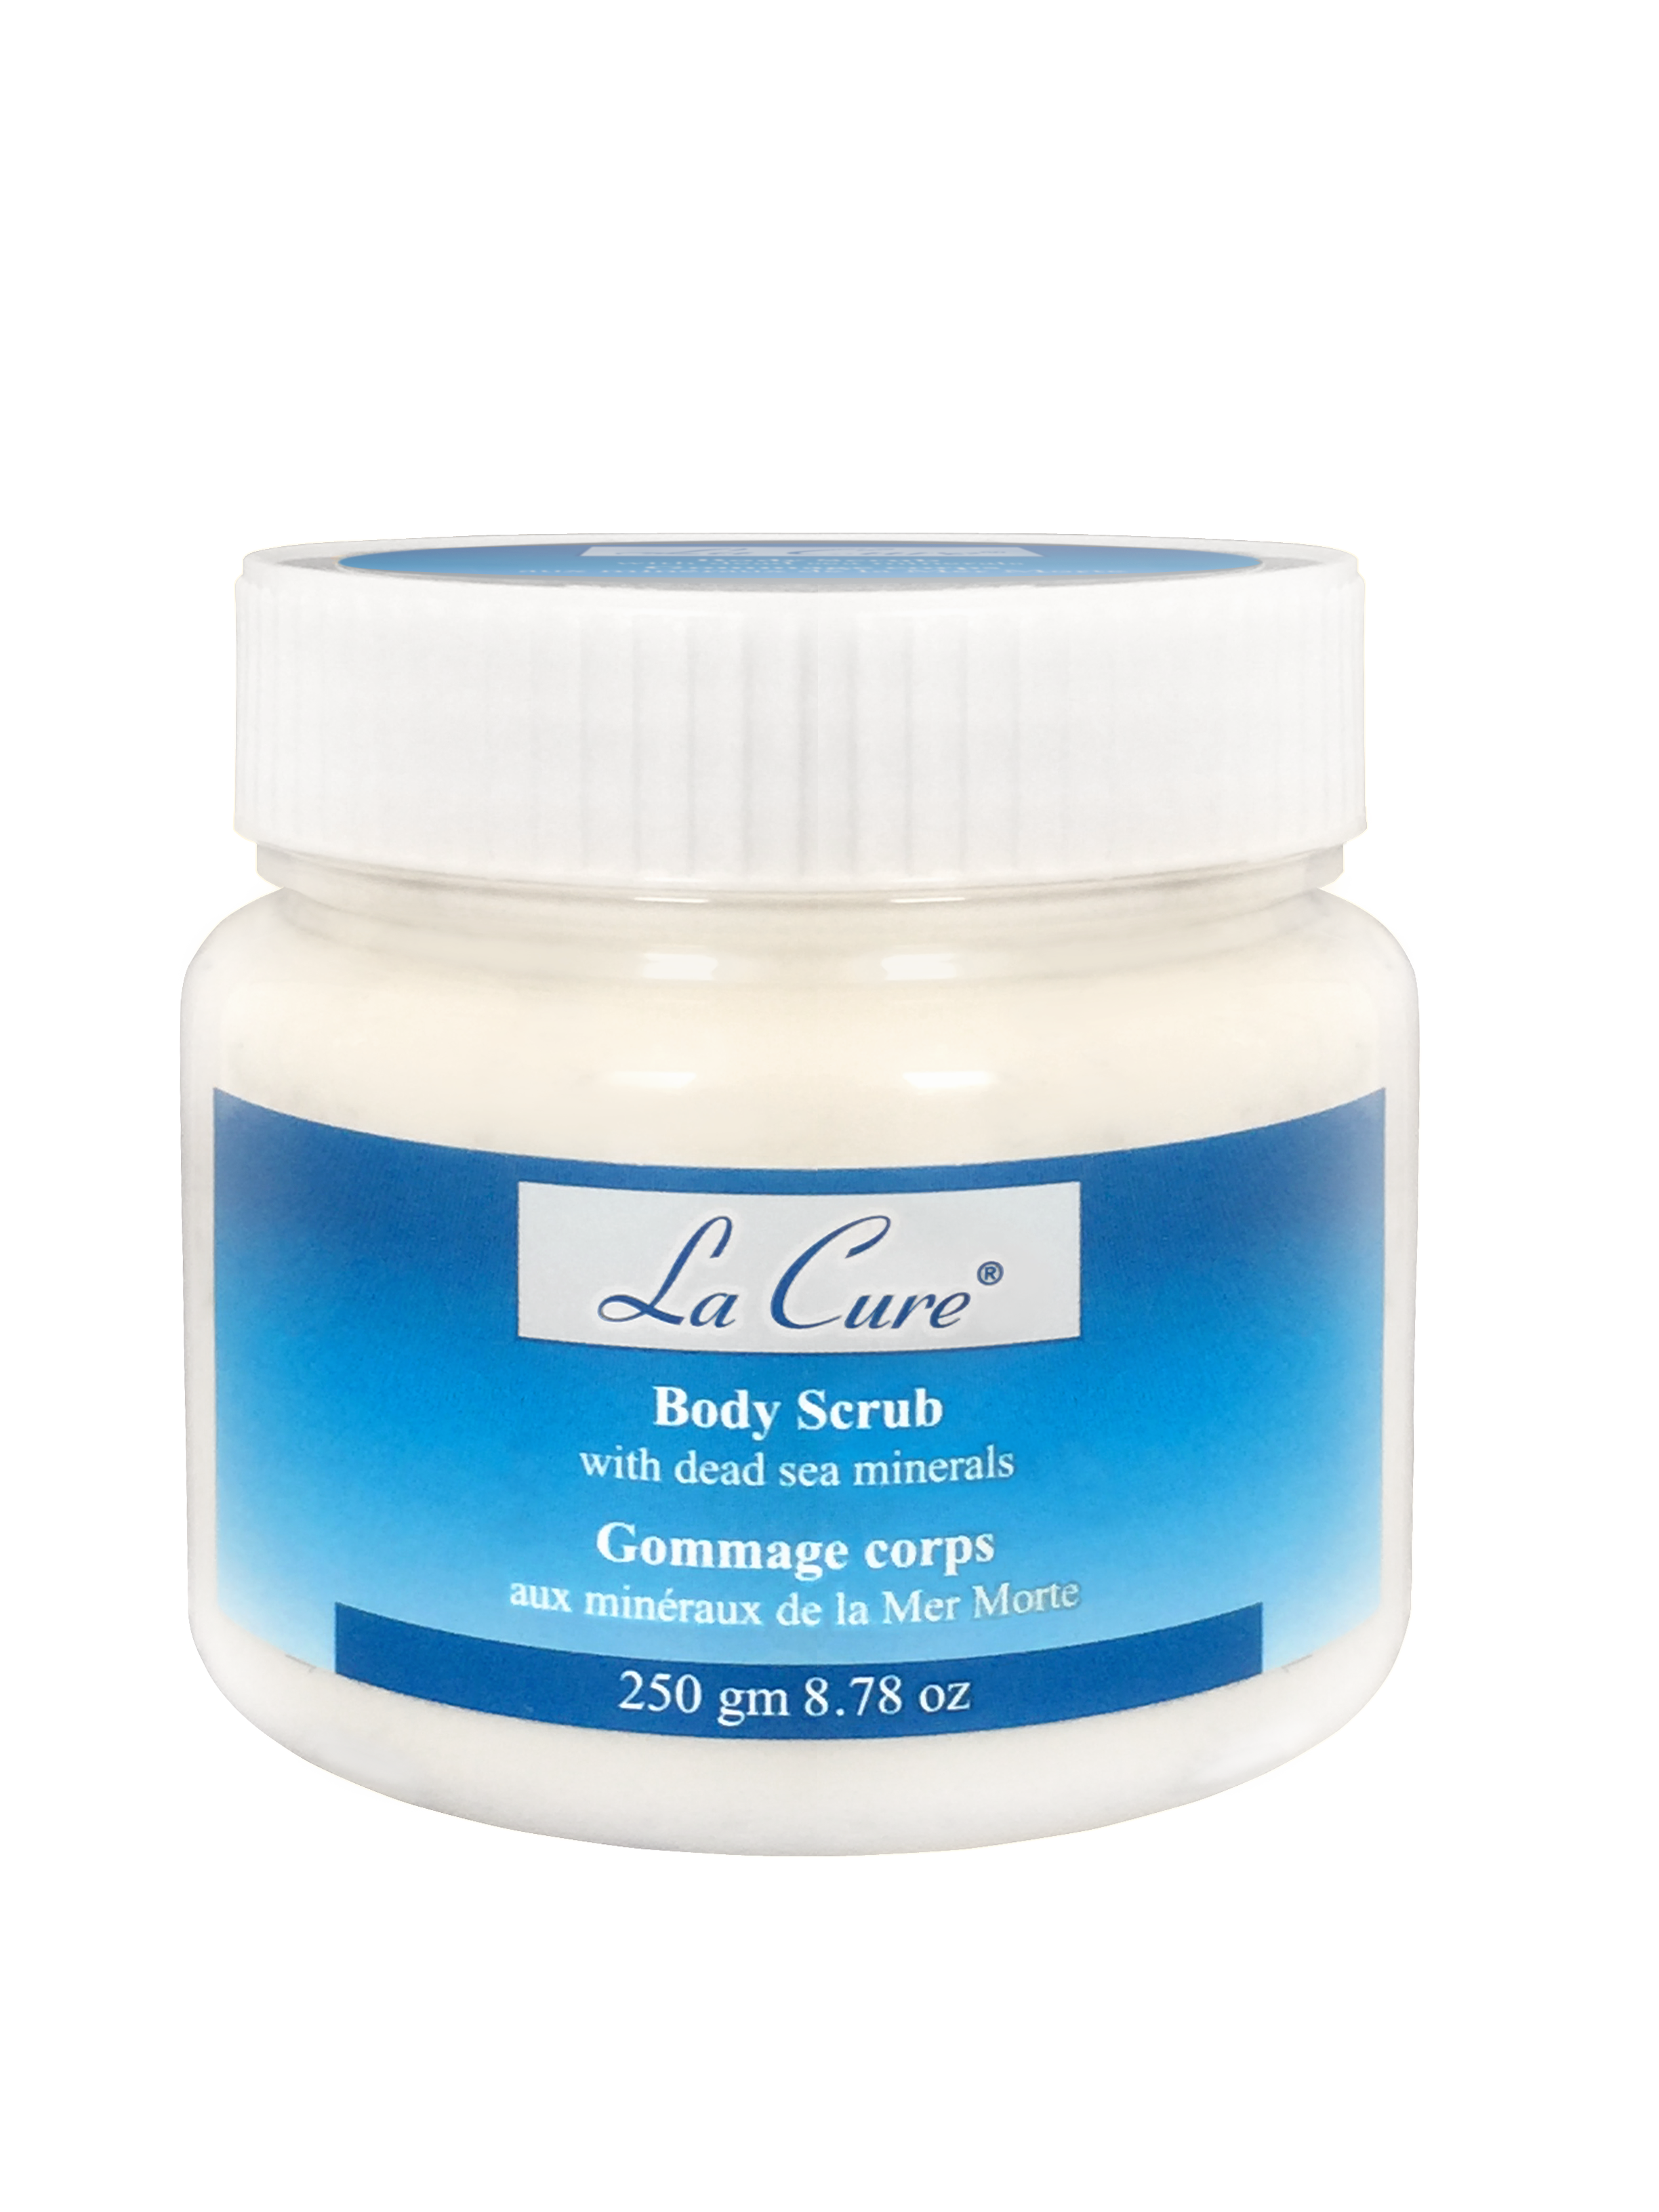 La-Cure_Body-Scrub-